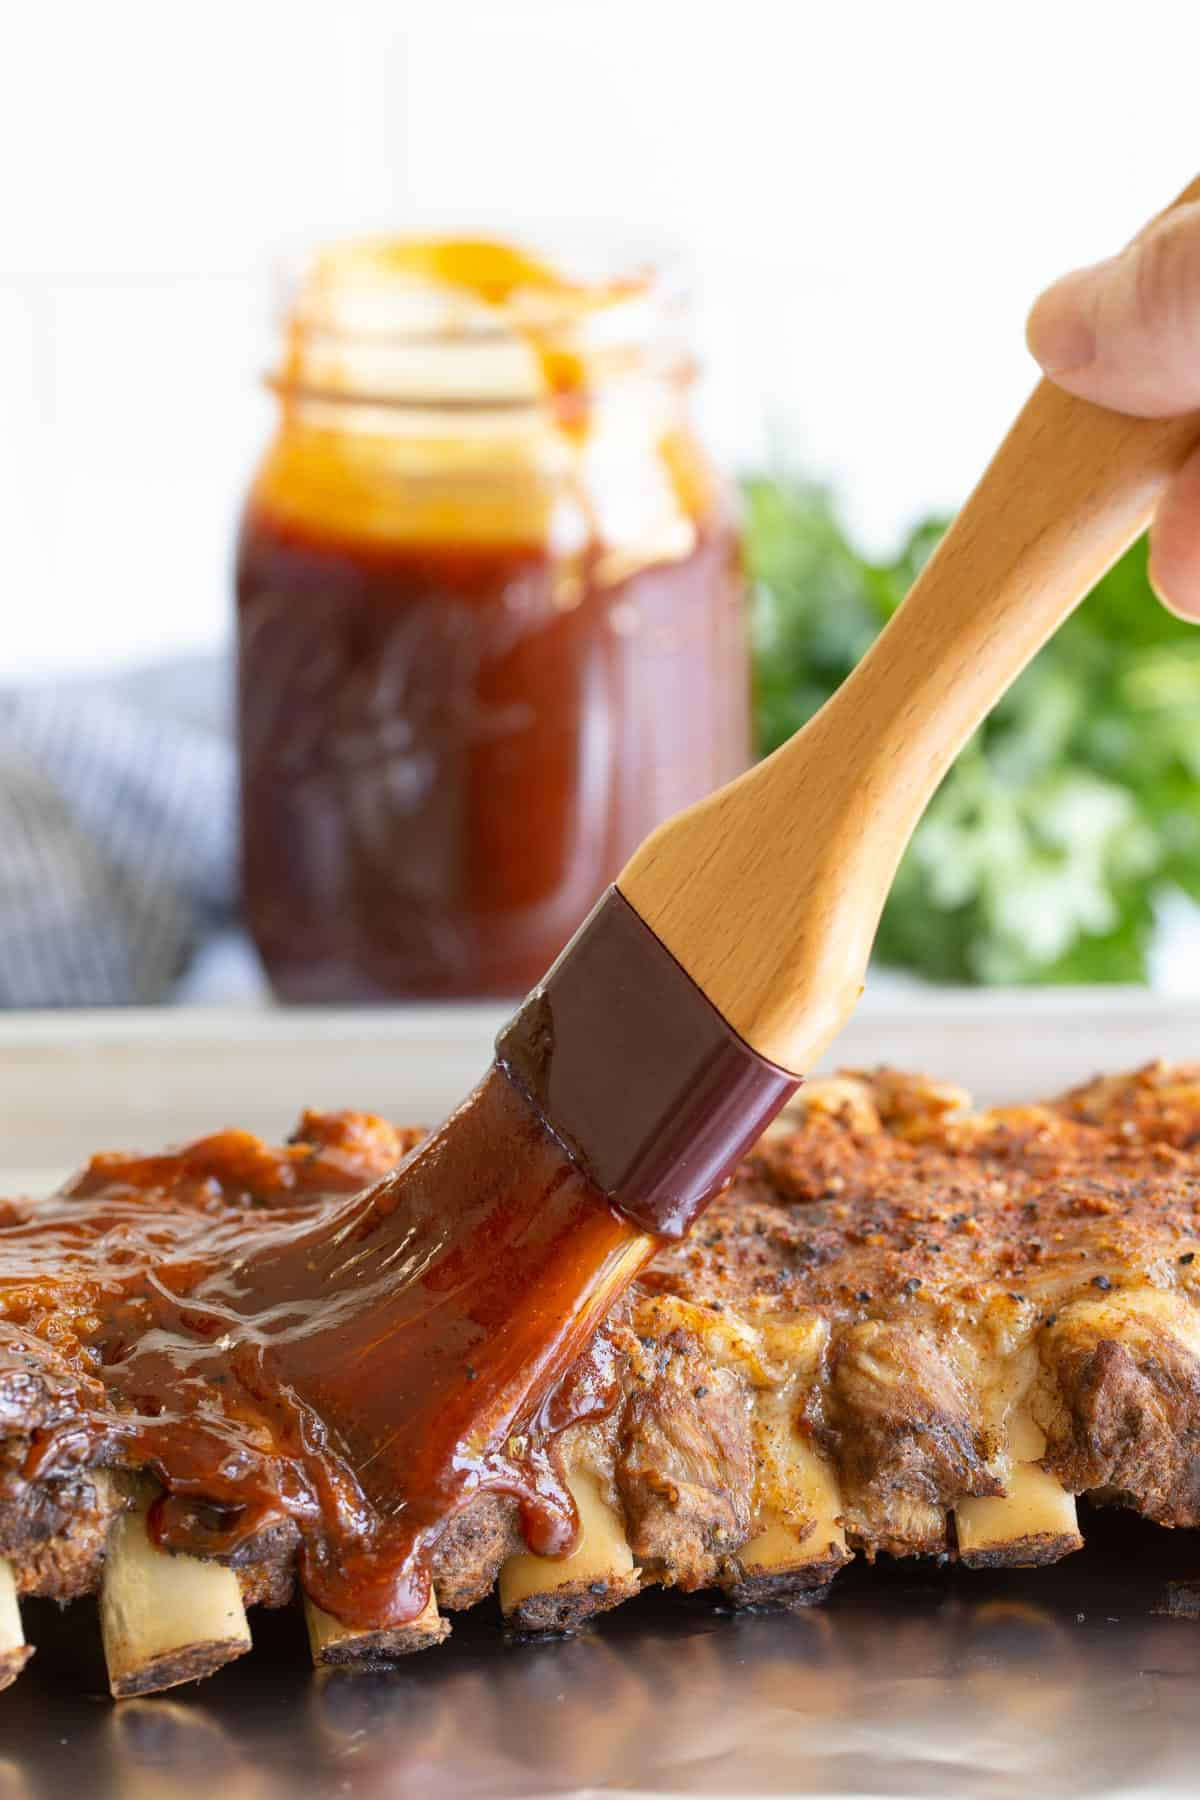 Brushing barbecue sauce on a rack of ribs on a baking sheet.